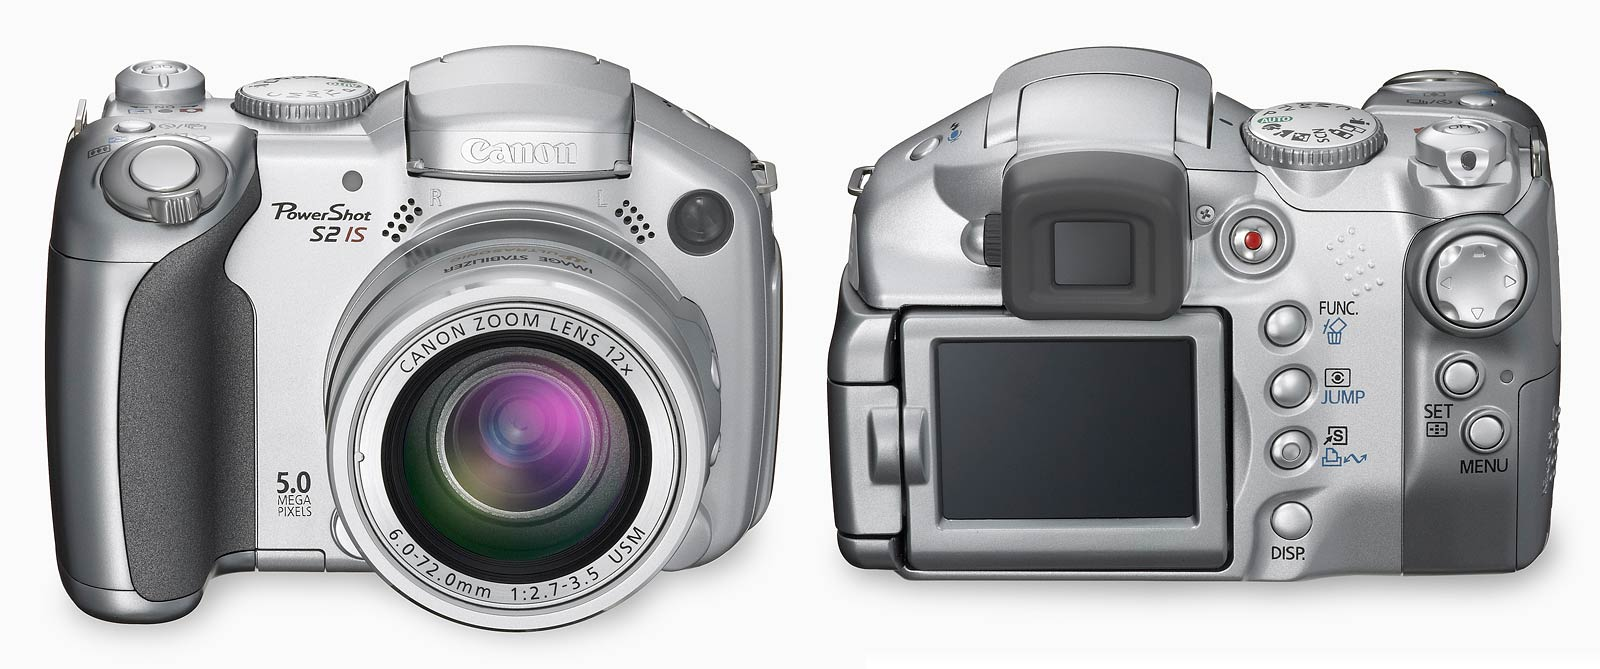 canon powershot s2 is digital photography review rh dpreview com canon powershot s2 is manual pdf canon powershot s2 is manual